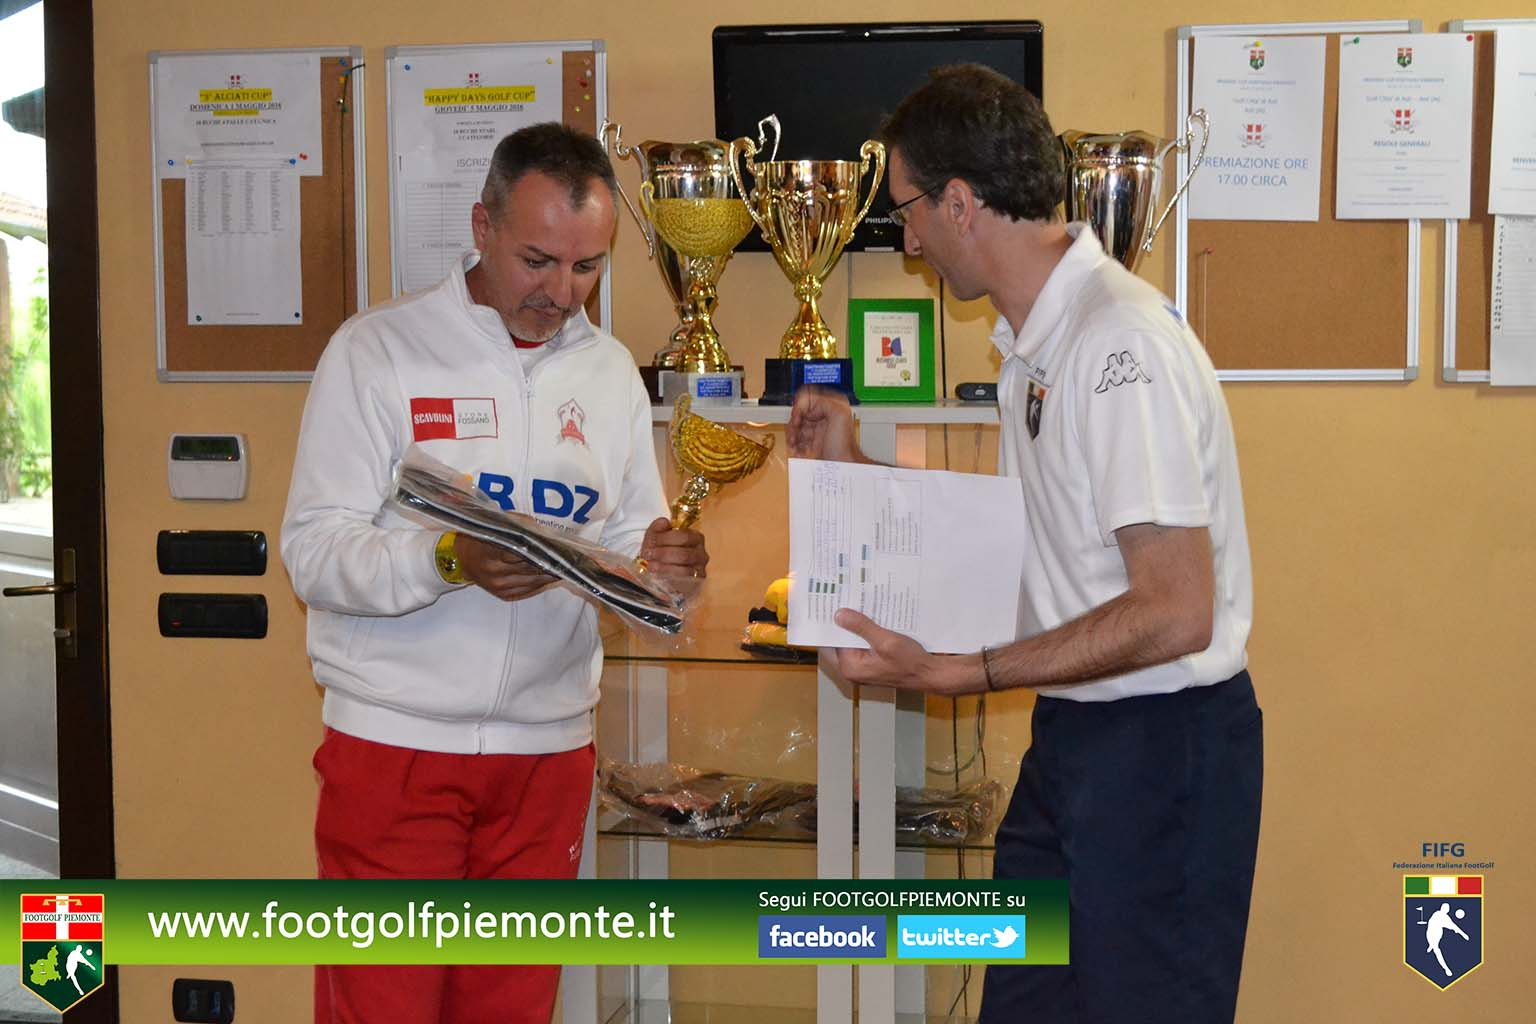 FOTO 9 Regions' Cup Footgolf Piemonte 2016 Golf Città di Asti (At) 30apr16-122